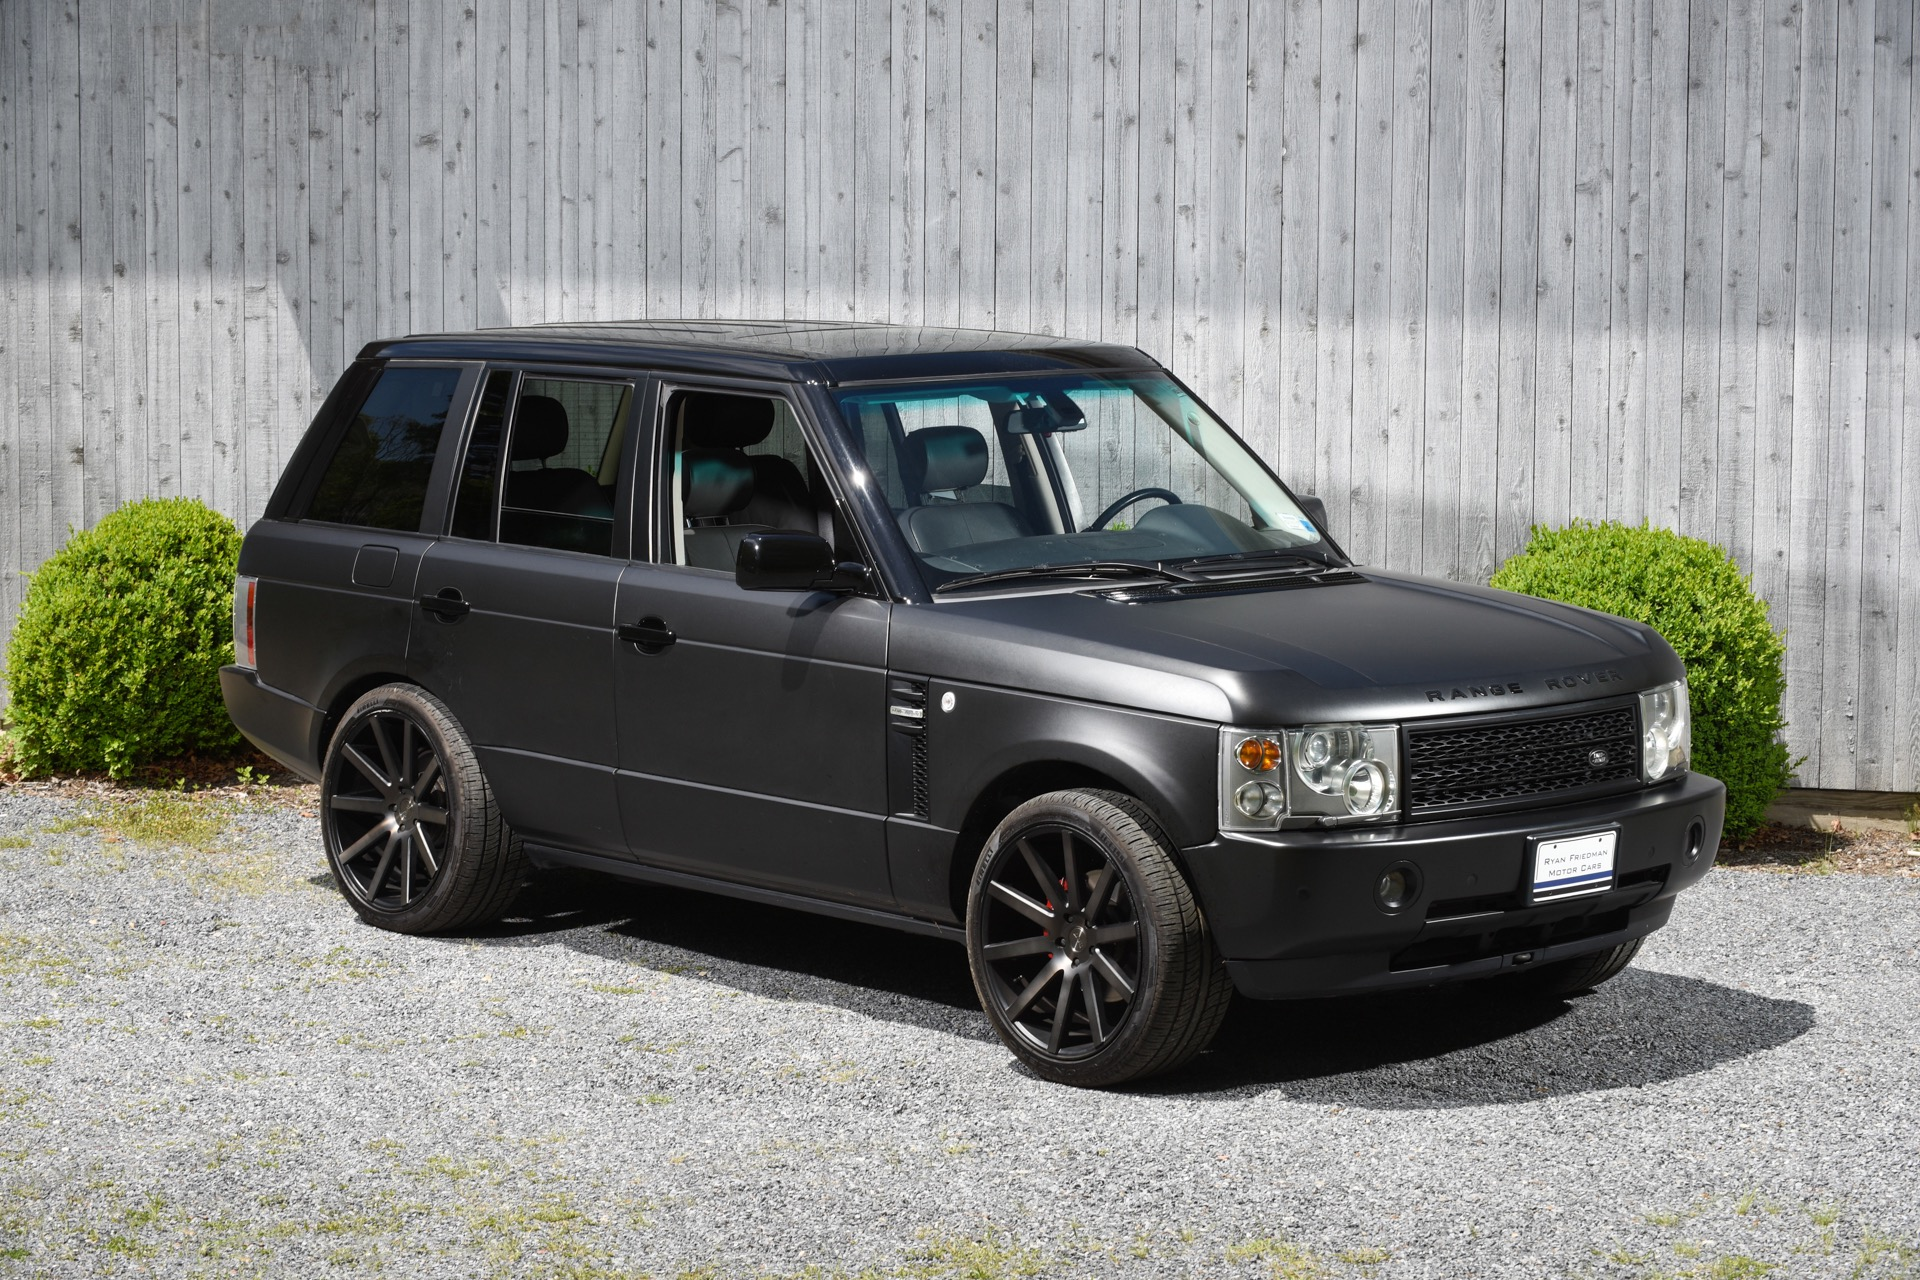 2004 land rover range rover hse stock 35 for sale near valley stream ny ny land rover dealer. Black Bedroom Furniture Sets. Home Design Ideas